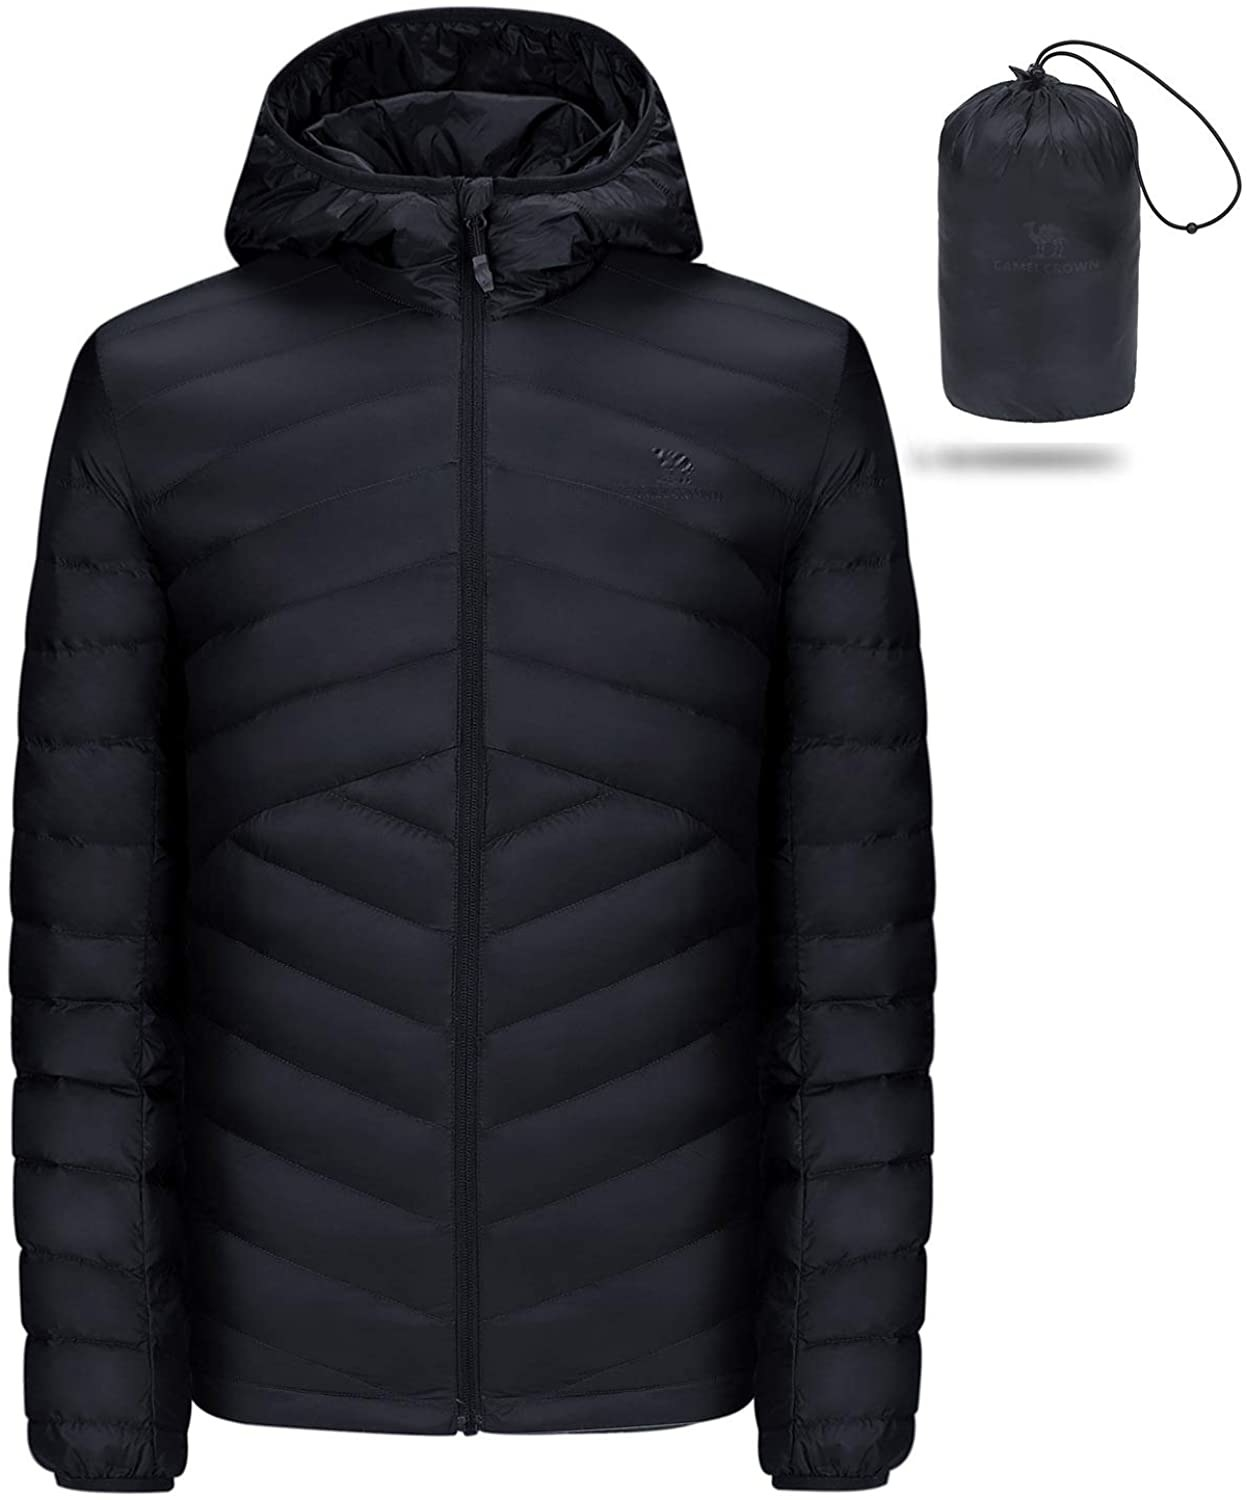 The black quilted jacket and the bag it packs down to